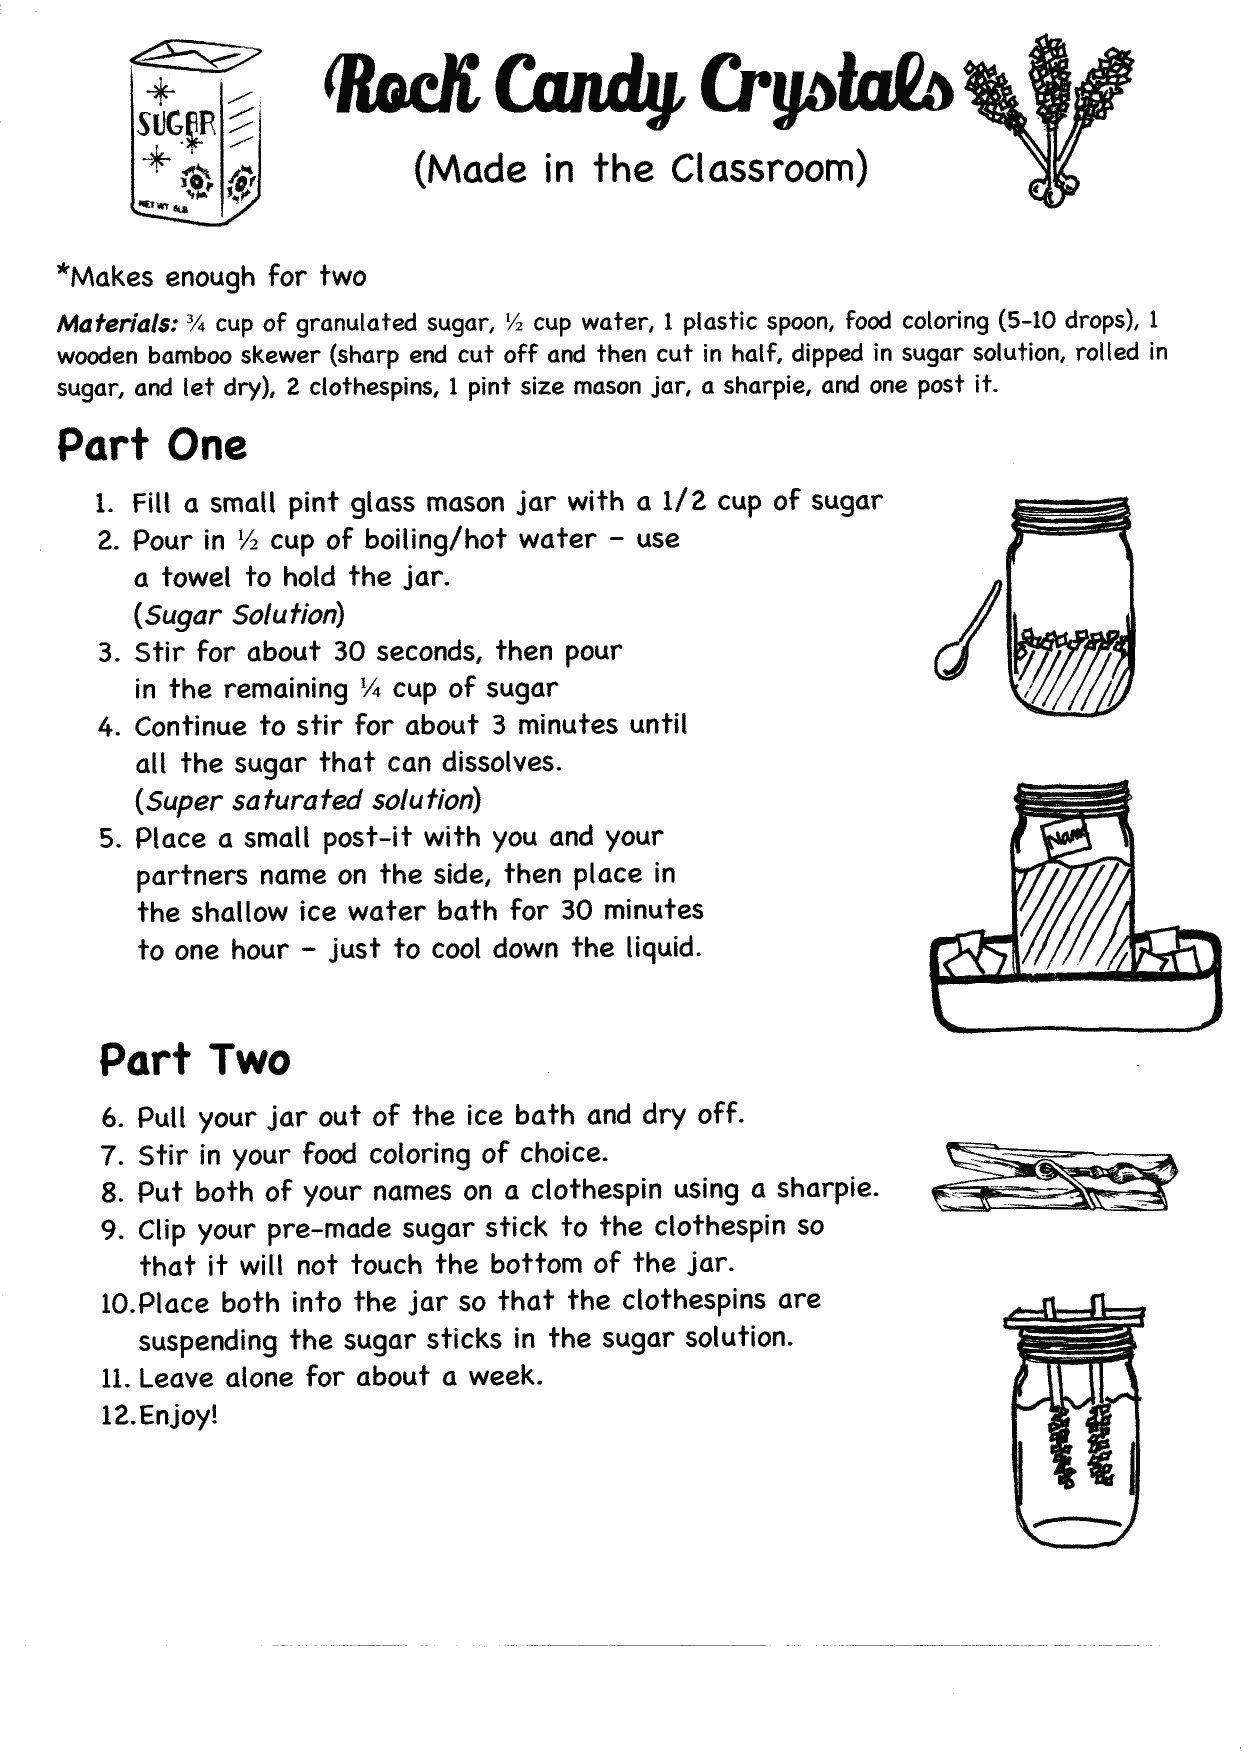 Eighth Grade Science Worksheets Candy Crystals In the Classroom Pg 8th Grade Science Lab